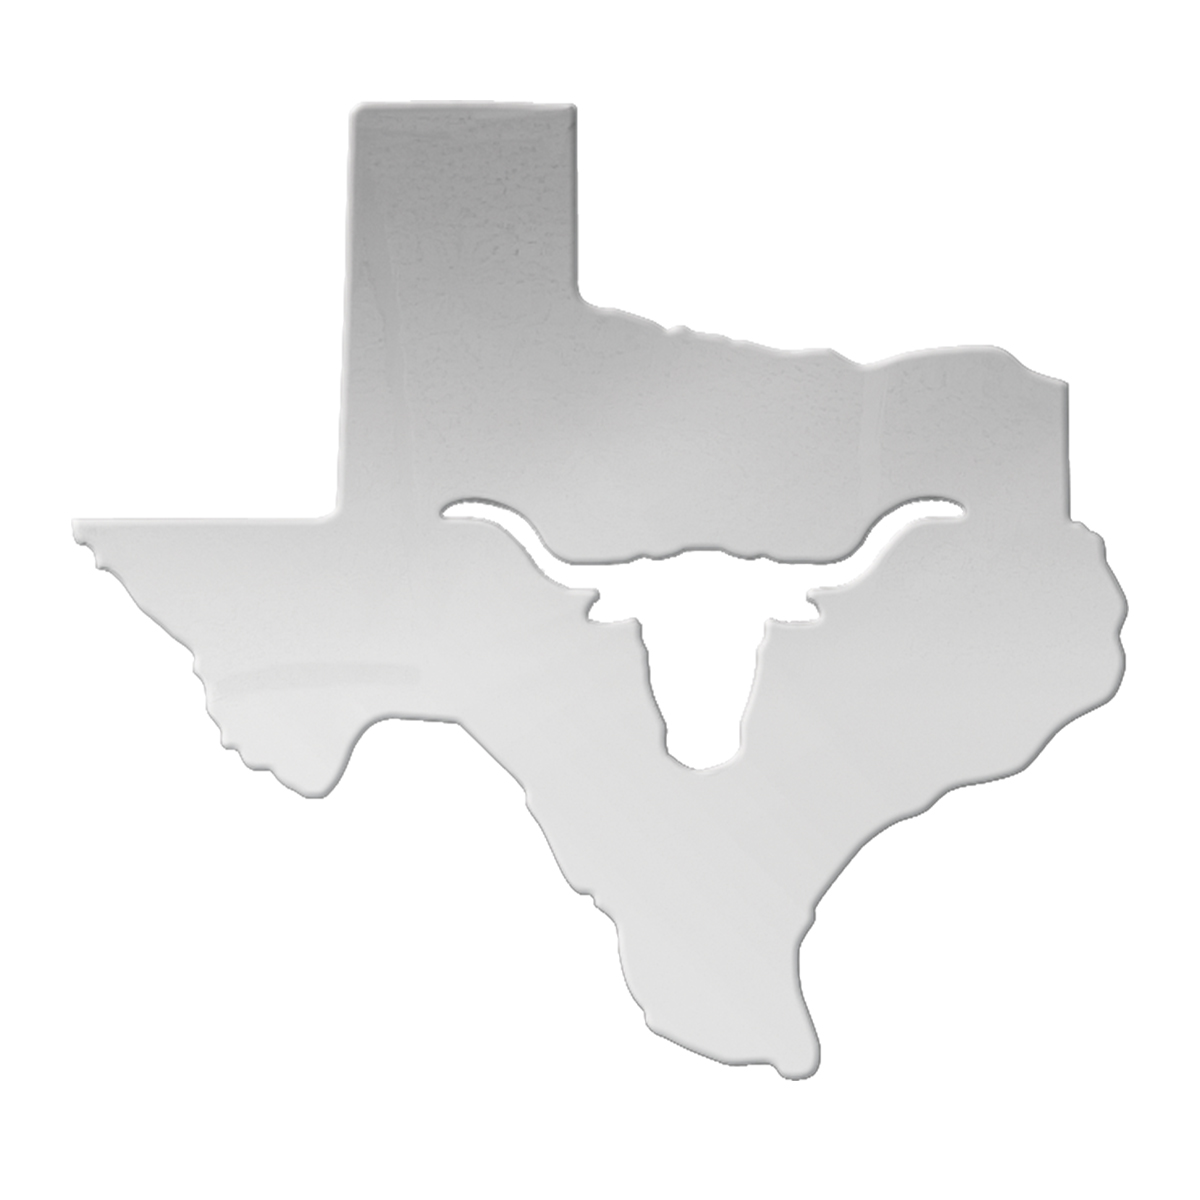 Texas State Cut Out with Long Horn – Large